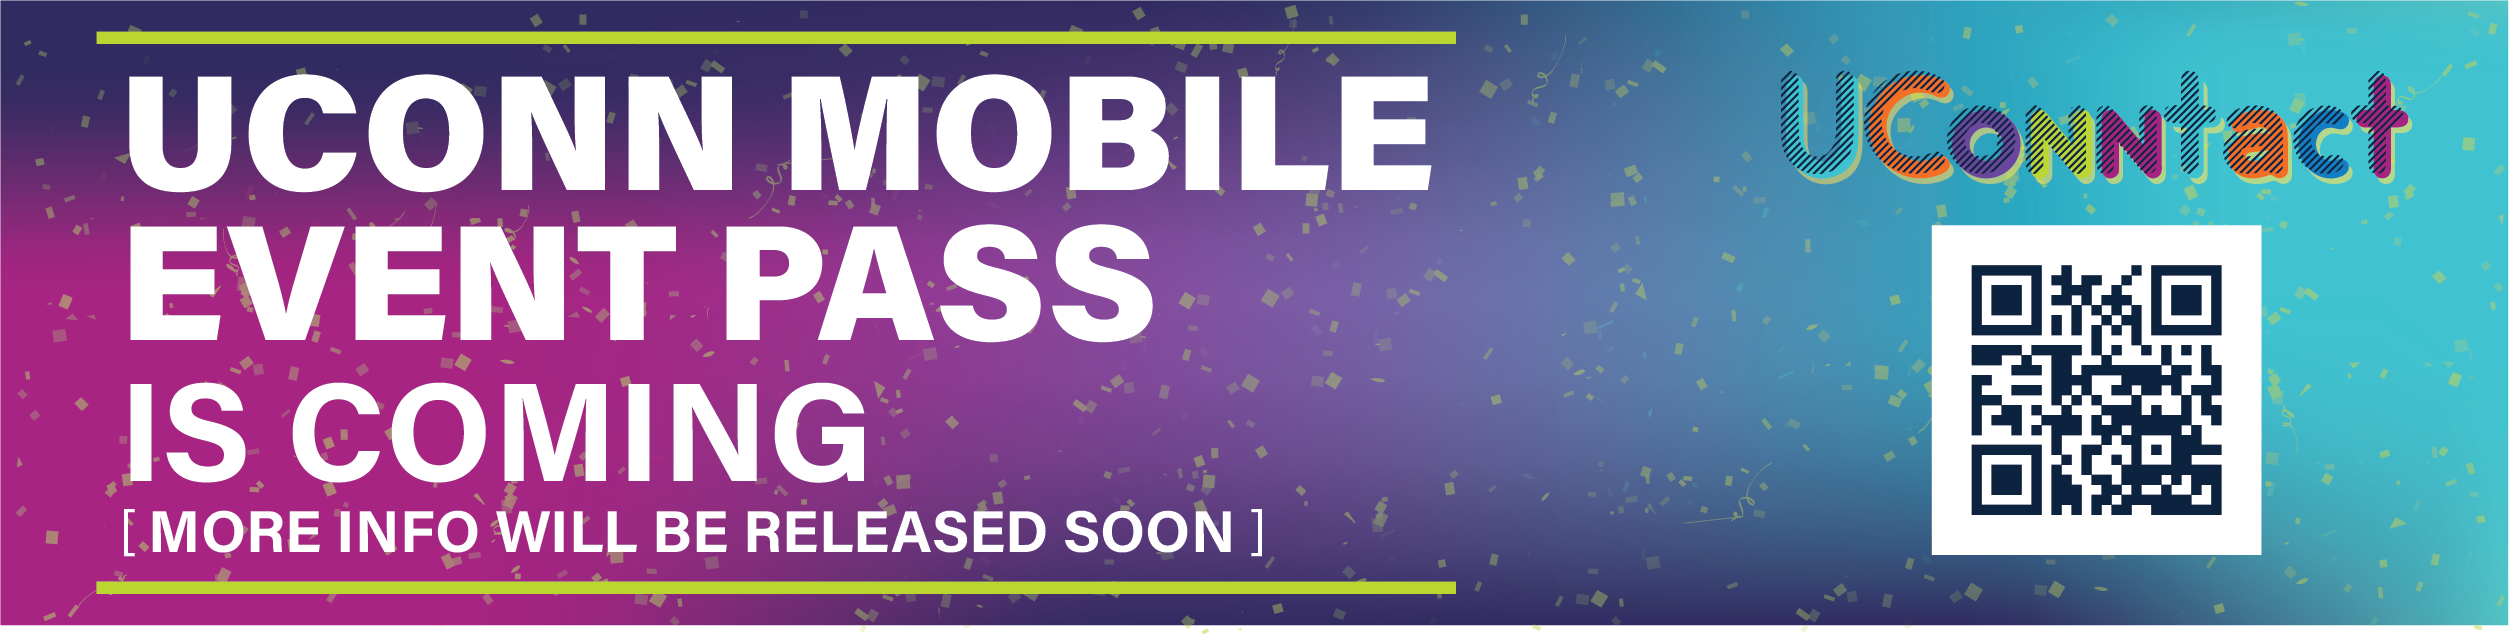 UConn Mobile Event Check In Coming Soon